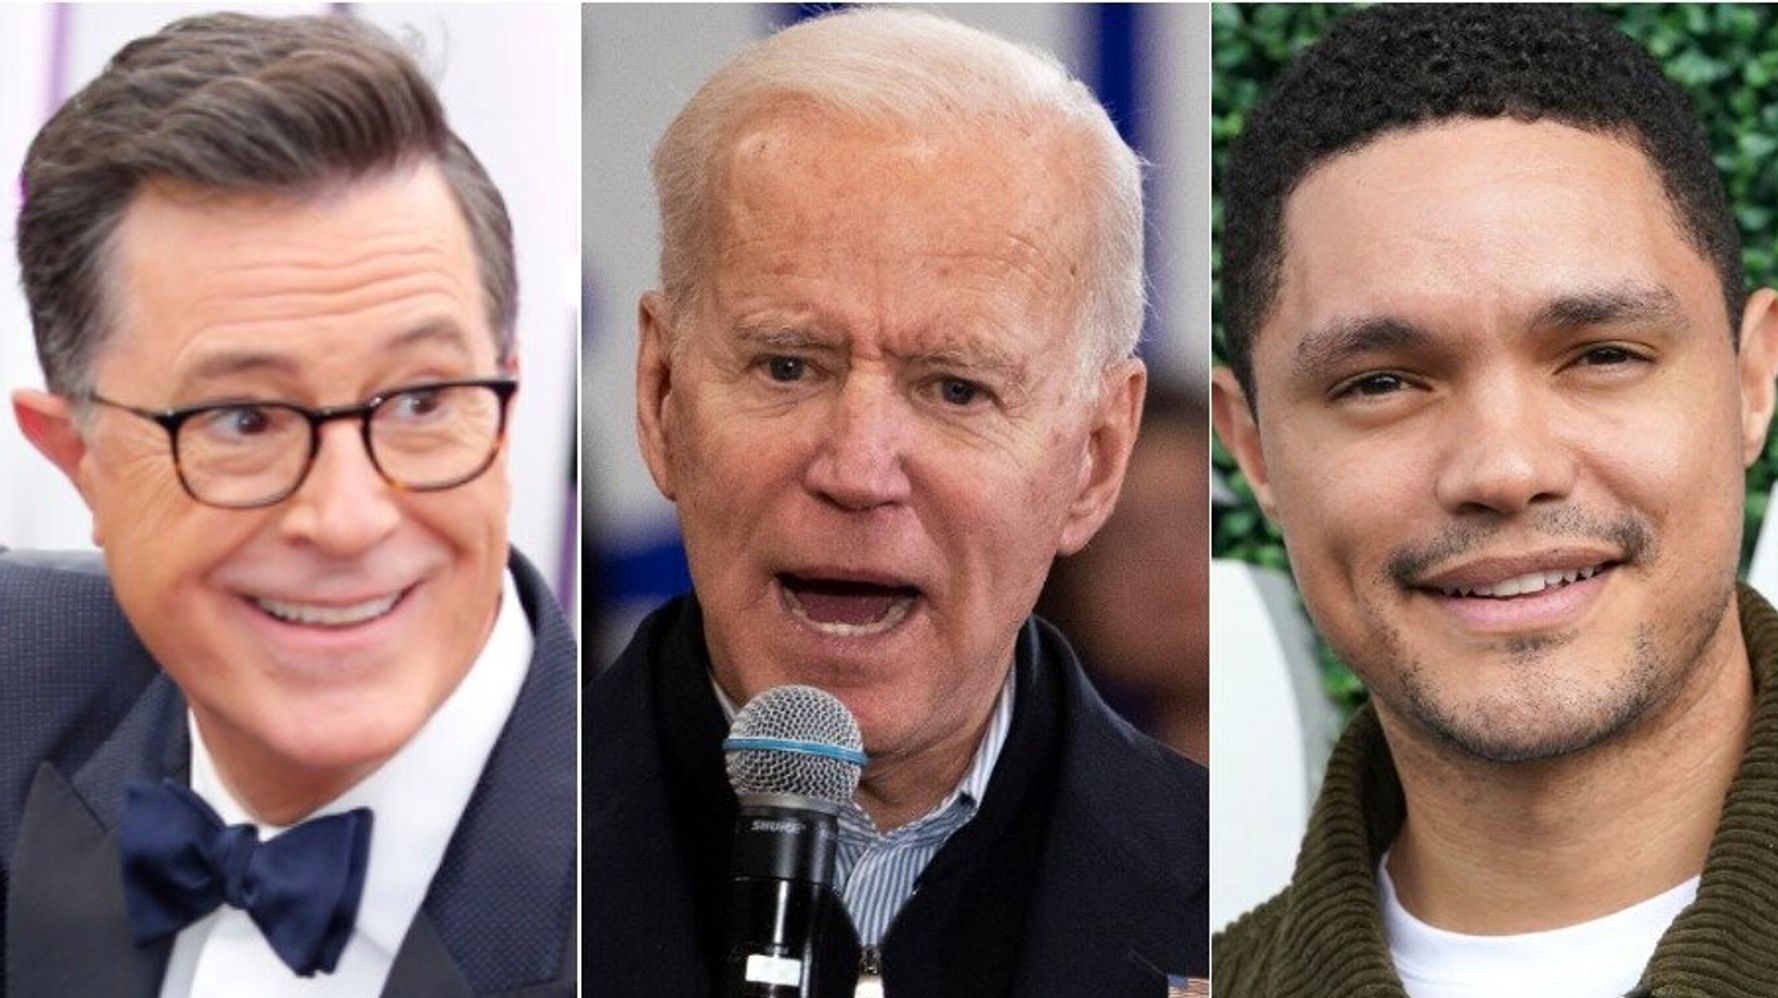 Westlake Legal Group 5e4229f1250000320033d5e5 Late Shows Cook Up Their Own Bizarre Biden-Style 'Pony Soldier' Insults